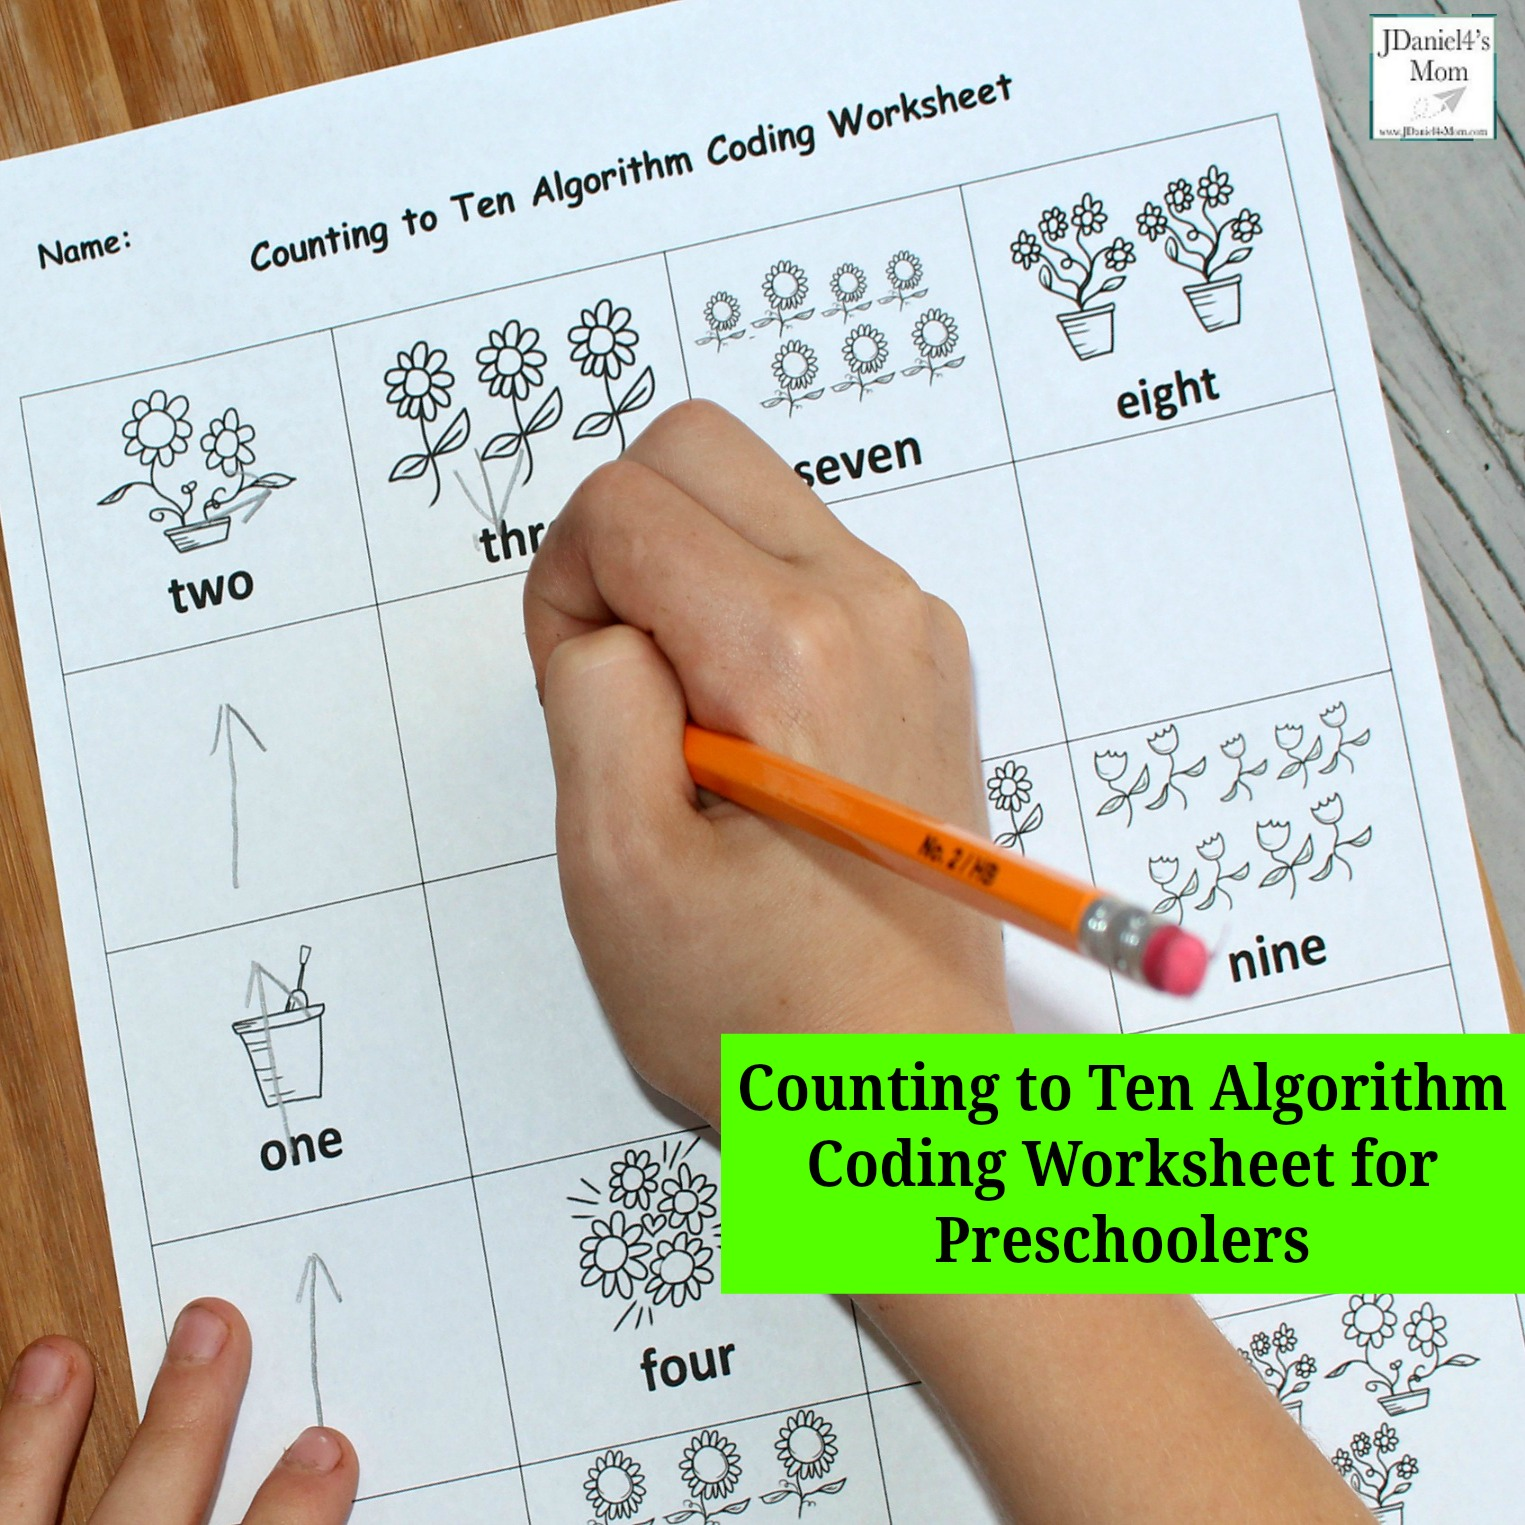 Counting To Ten Algorithm Coding Worksheet For Preschoolers